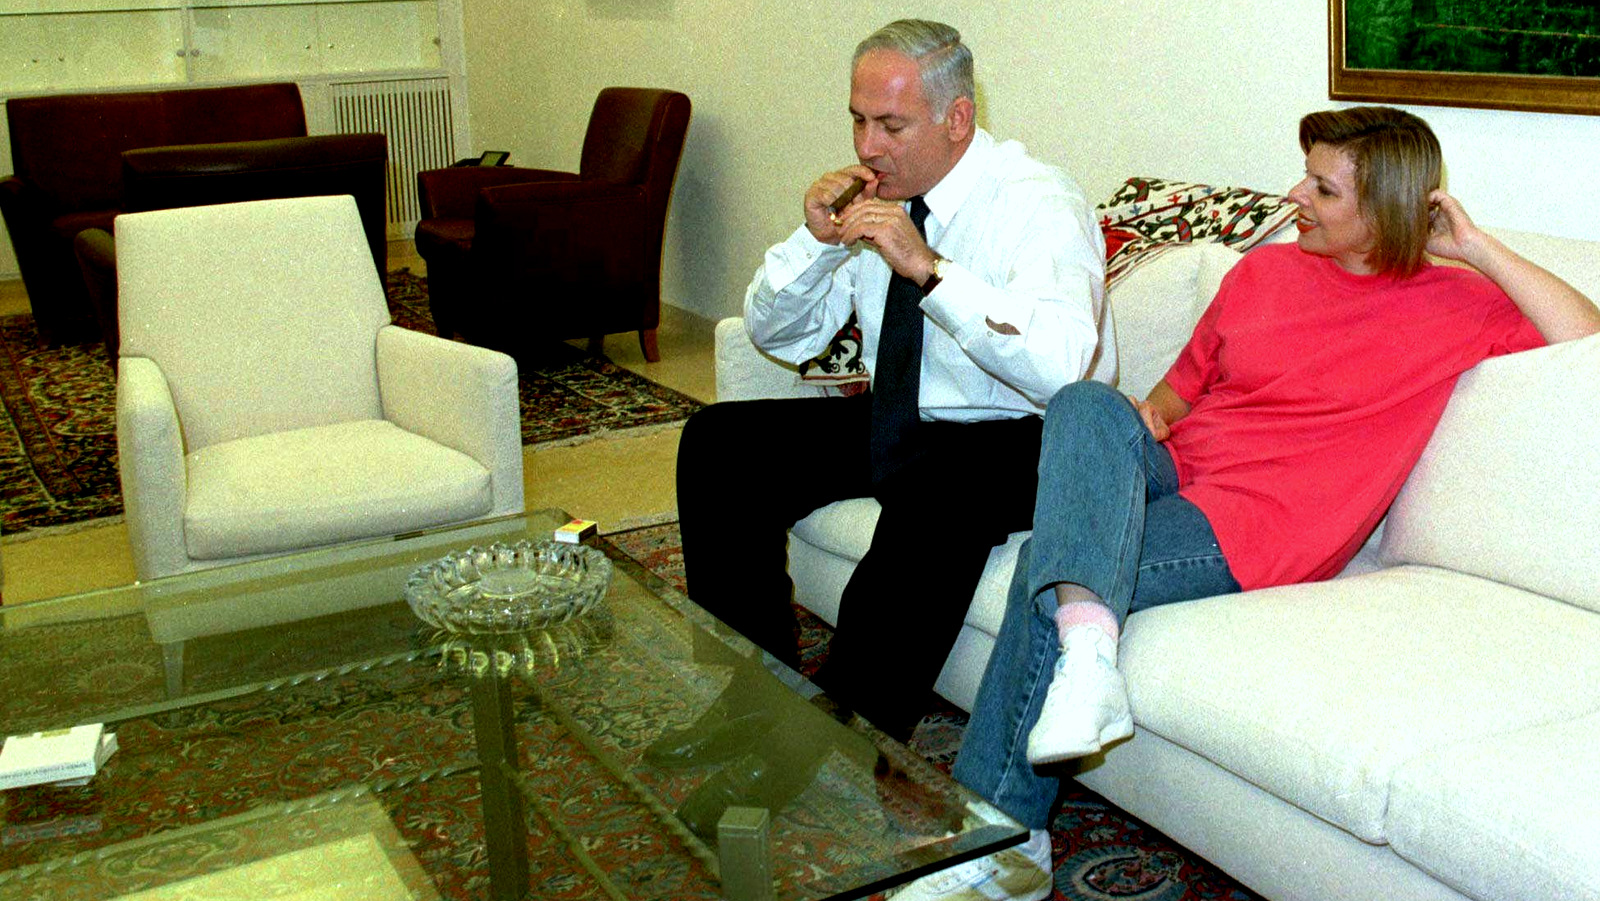 Sarah Netanyahu watches her husband, Israeli Prime Minister Benjamin Netanyahu, light a cigar in the living room of their newly refurbished official residence in Jerusalem Sunday Sept 28 1997. (AP/Zoom 77)